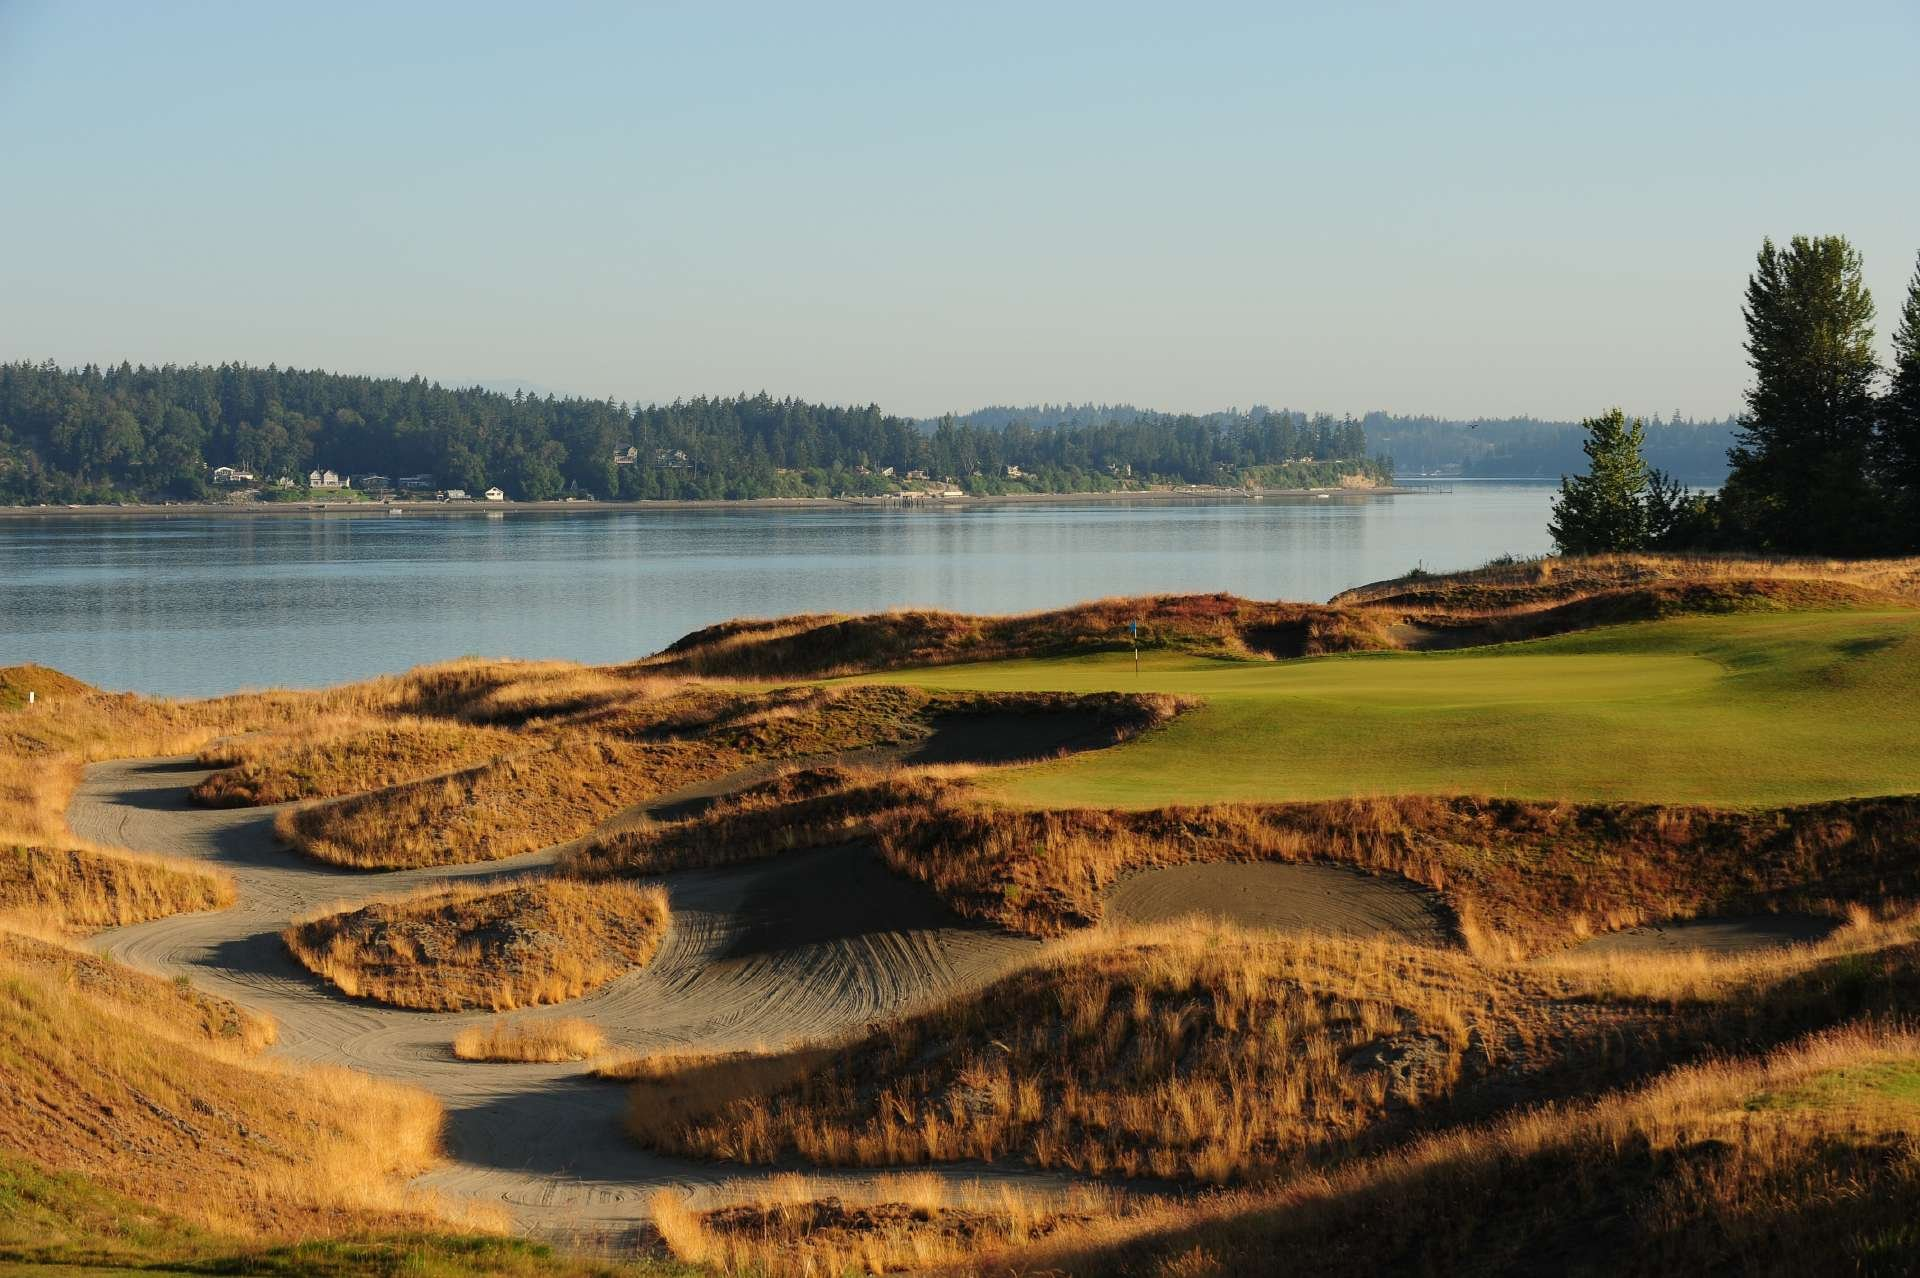 Chambers Bay hosted its first U.S. Open in 2015, its terrain, difficulty and coverage becoming a polarizing topic of discussion in the golf world.